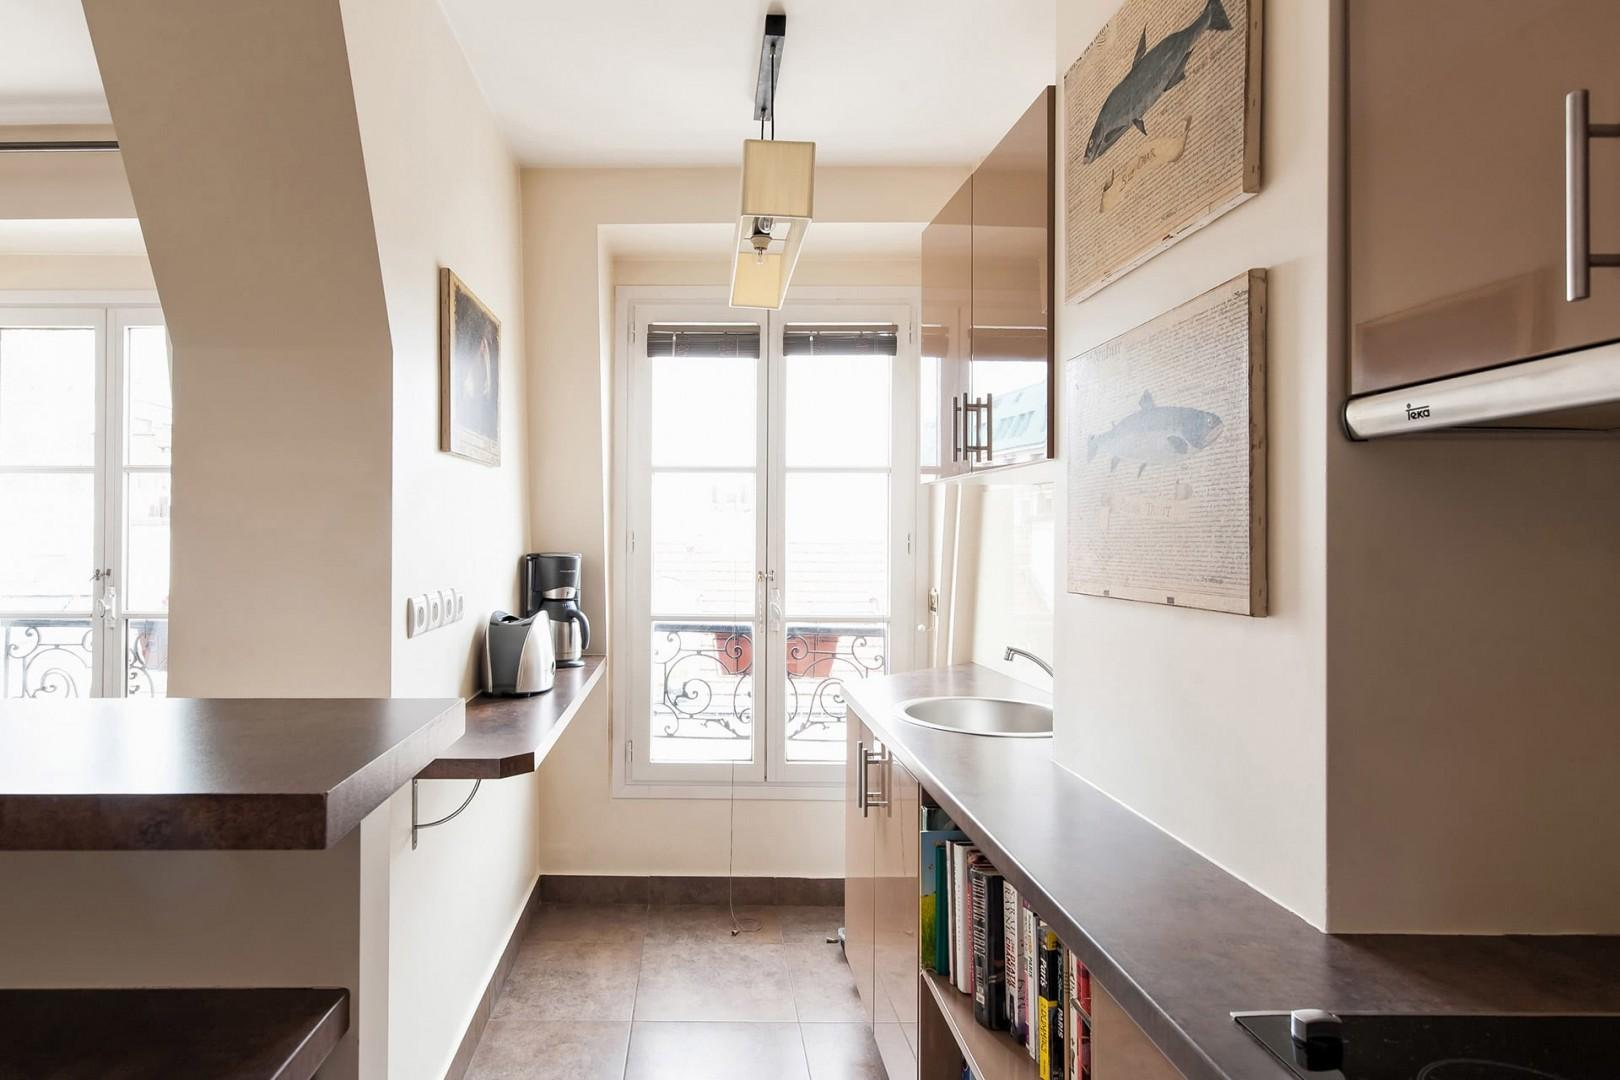 The modern kitchen is extremely spacious and sunny.